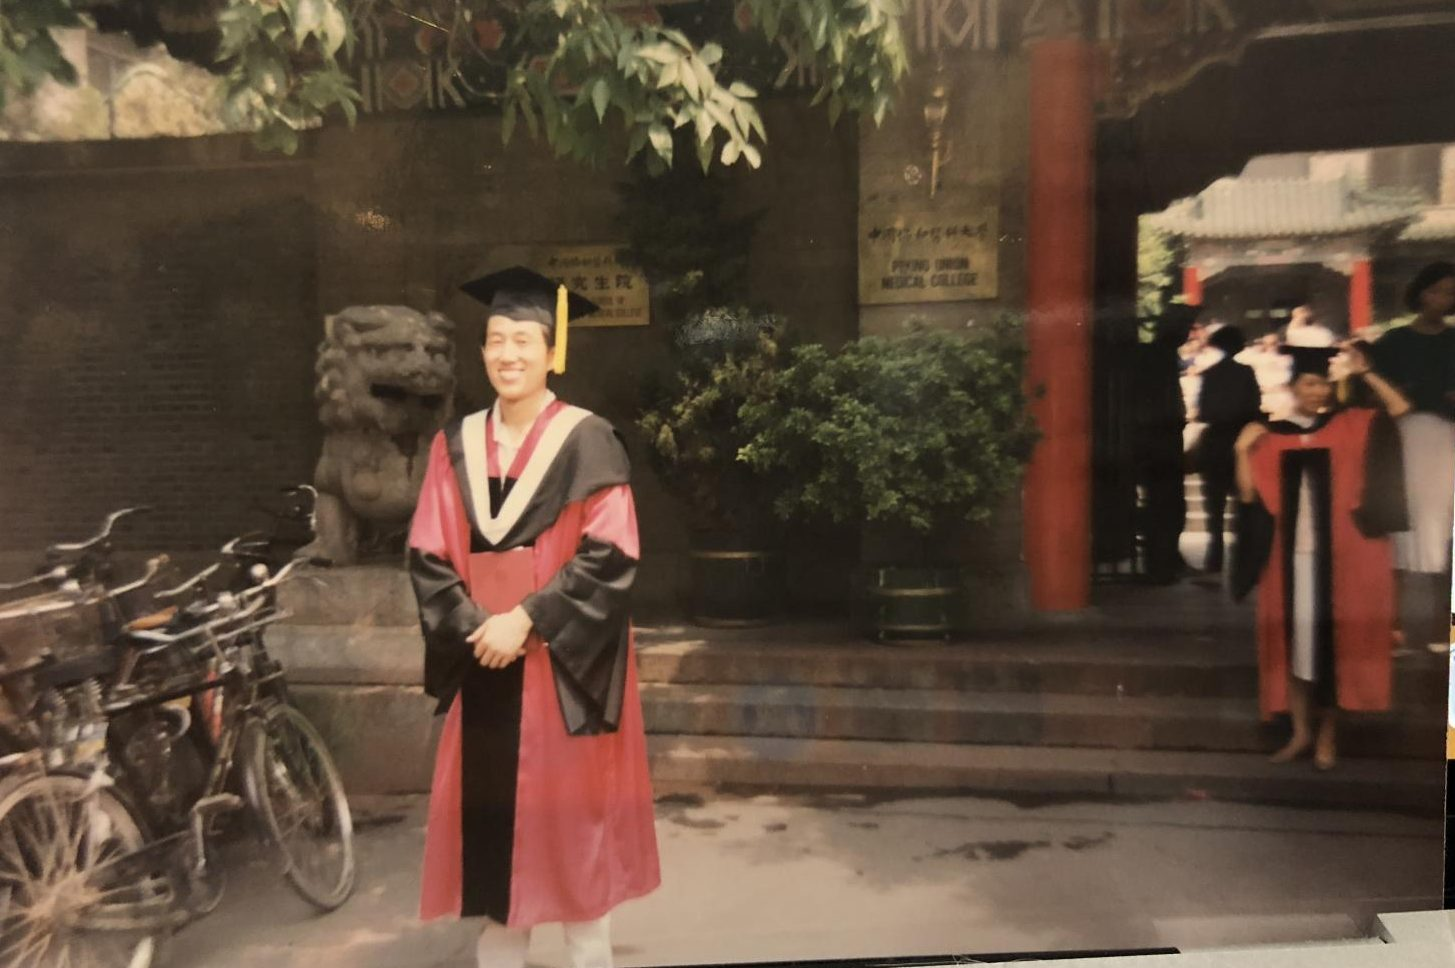 My father's graduation from the Chinese Academy of Medical Sciences/Peking Union Medical College in 1992. He received a PhD in Molecular Biology, and his first daughter was just born that year.